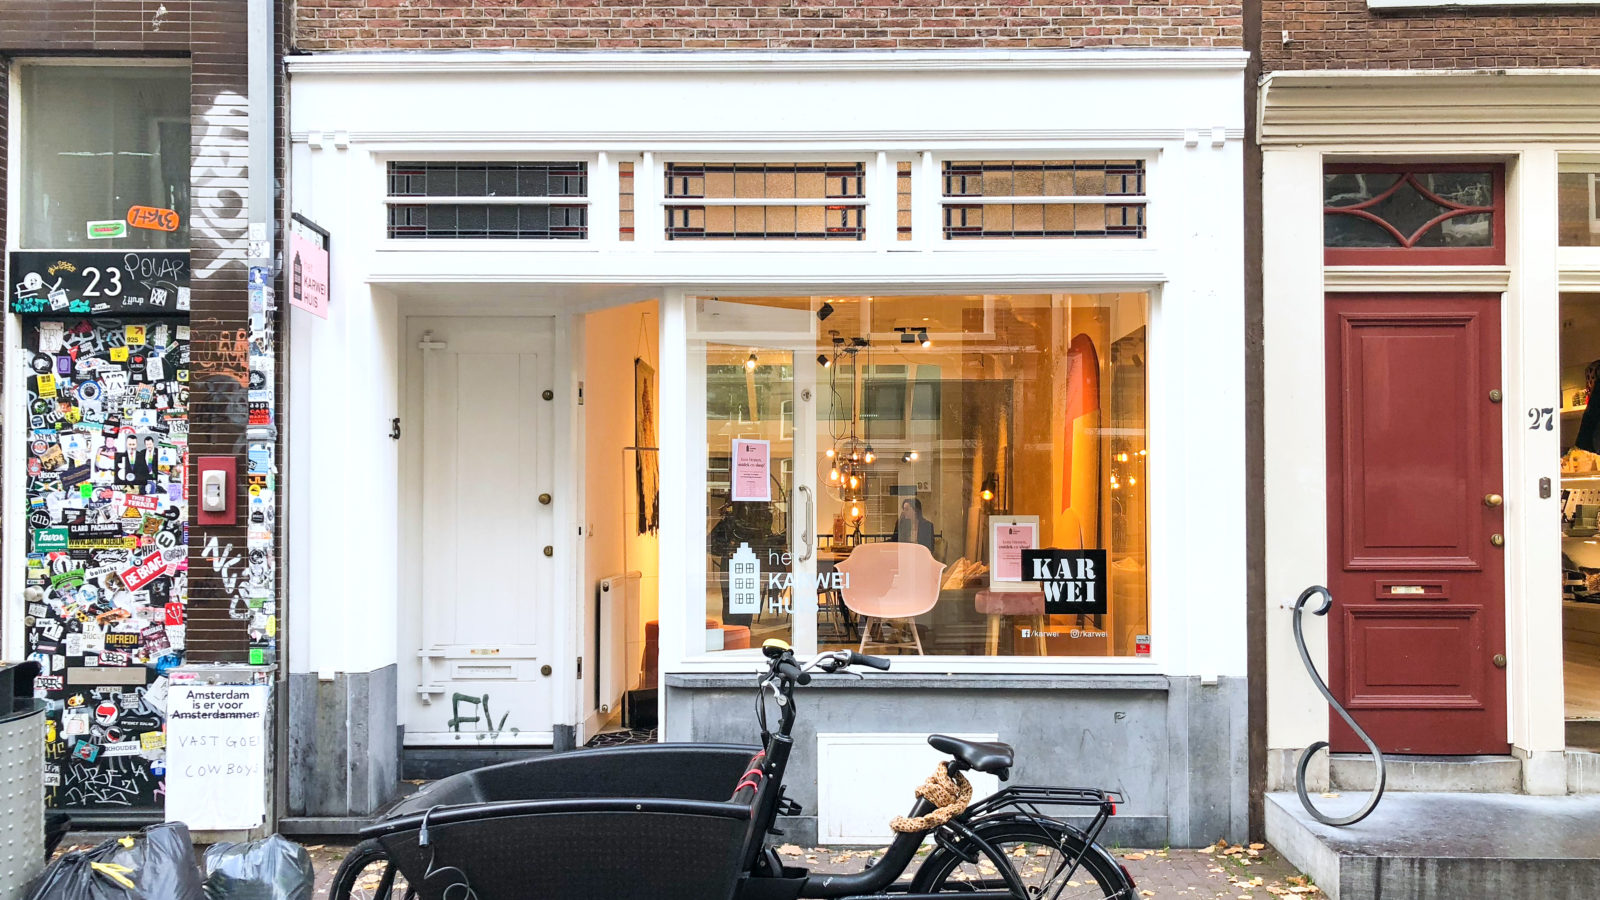 KARWEI POP-UP STORE IN DE NEGEN STRAATJES